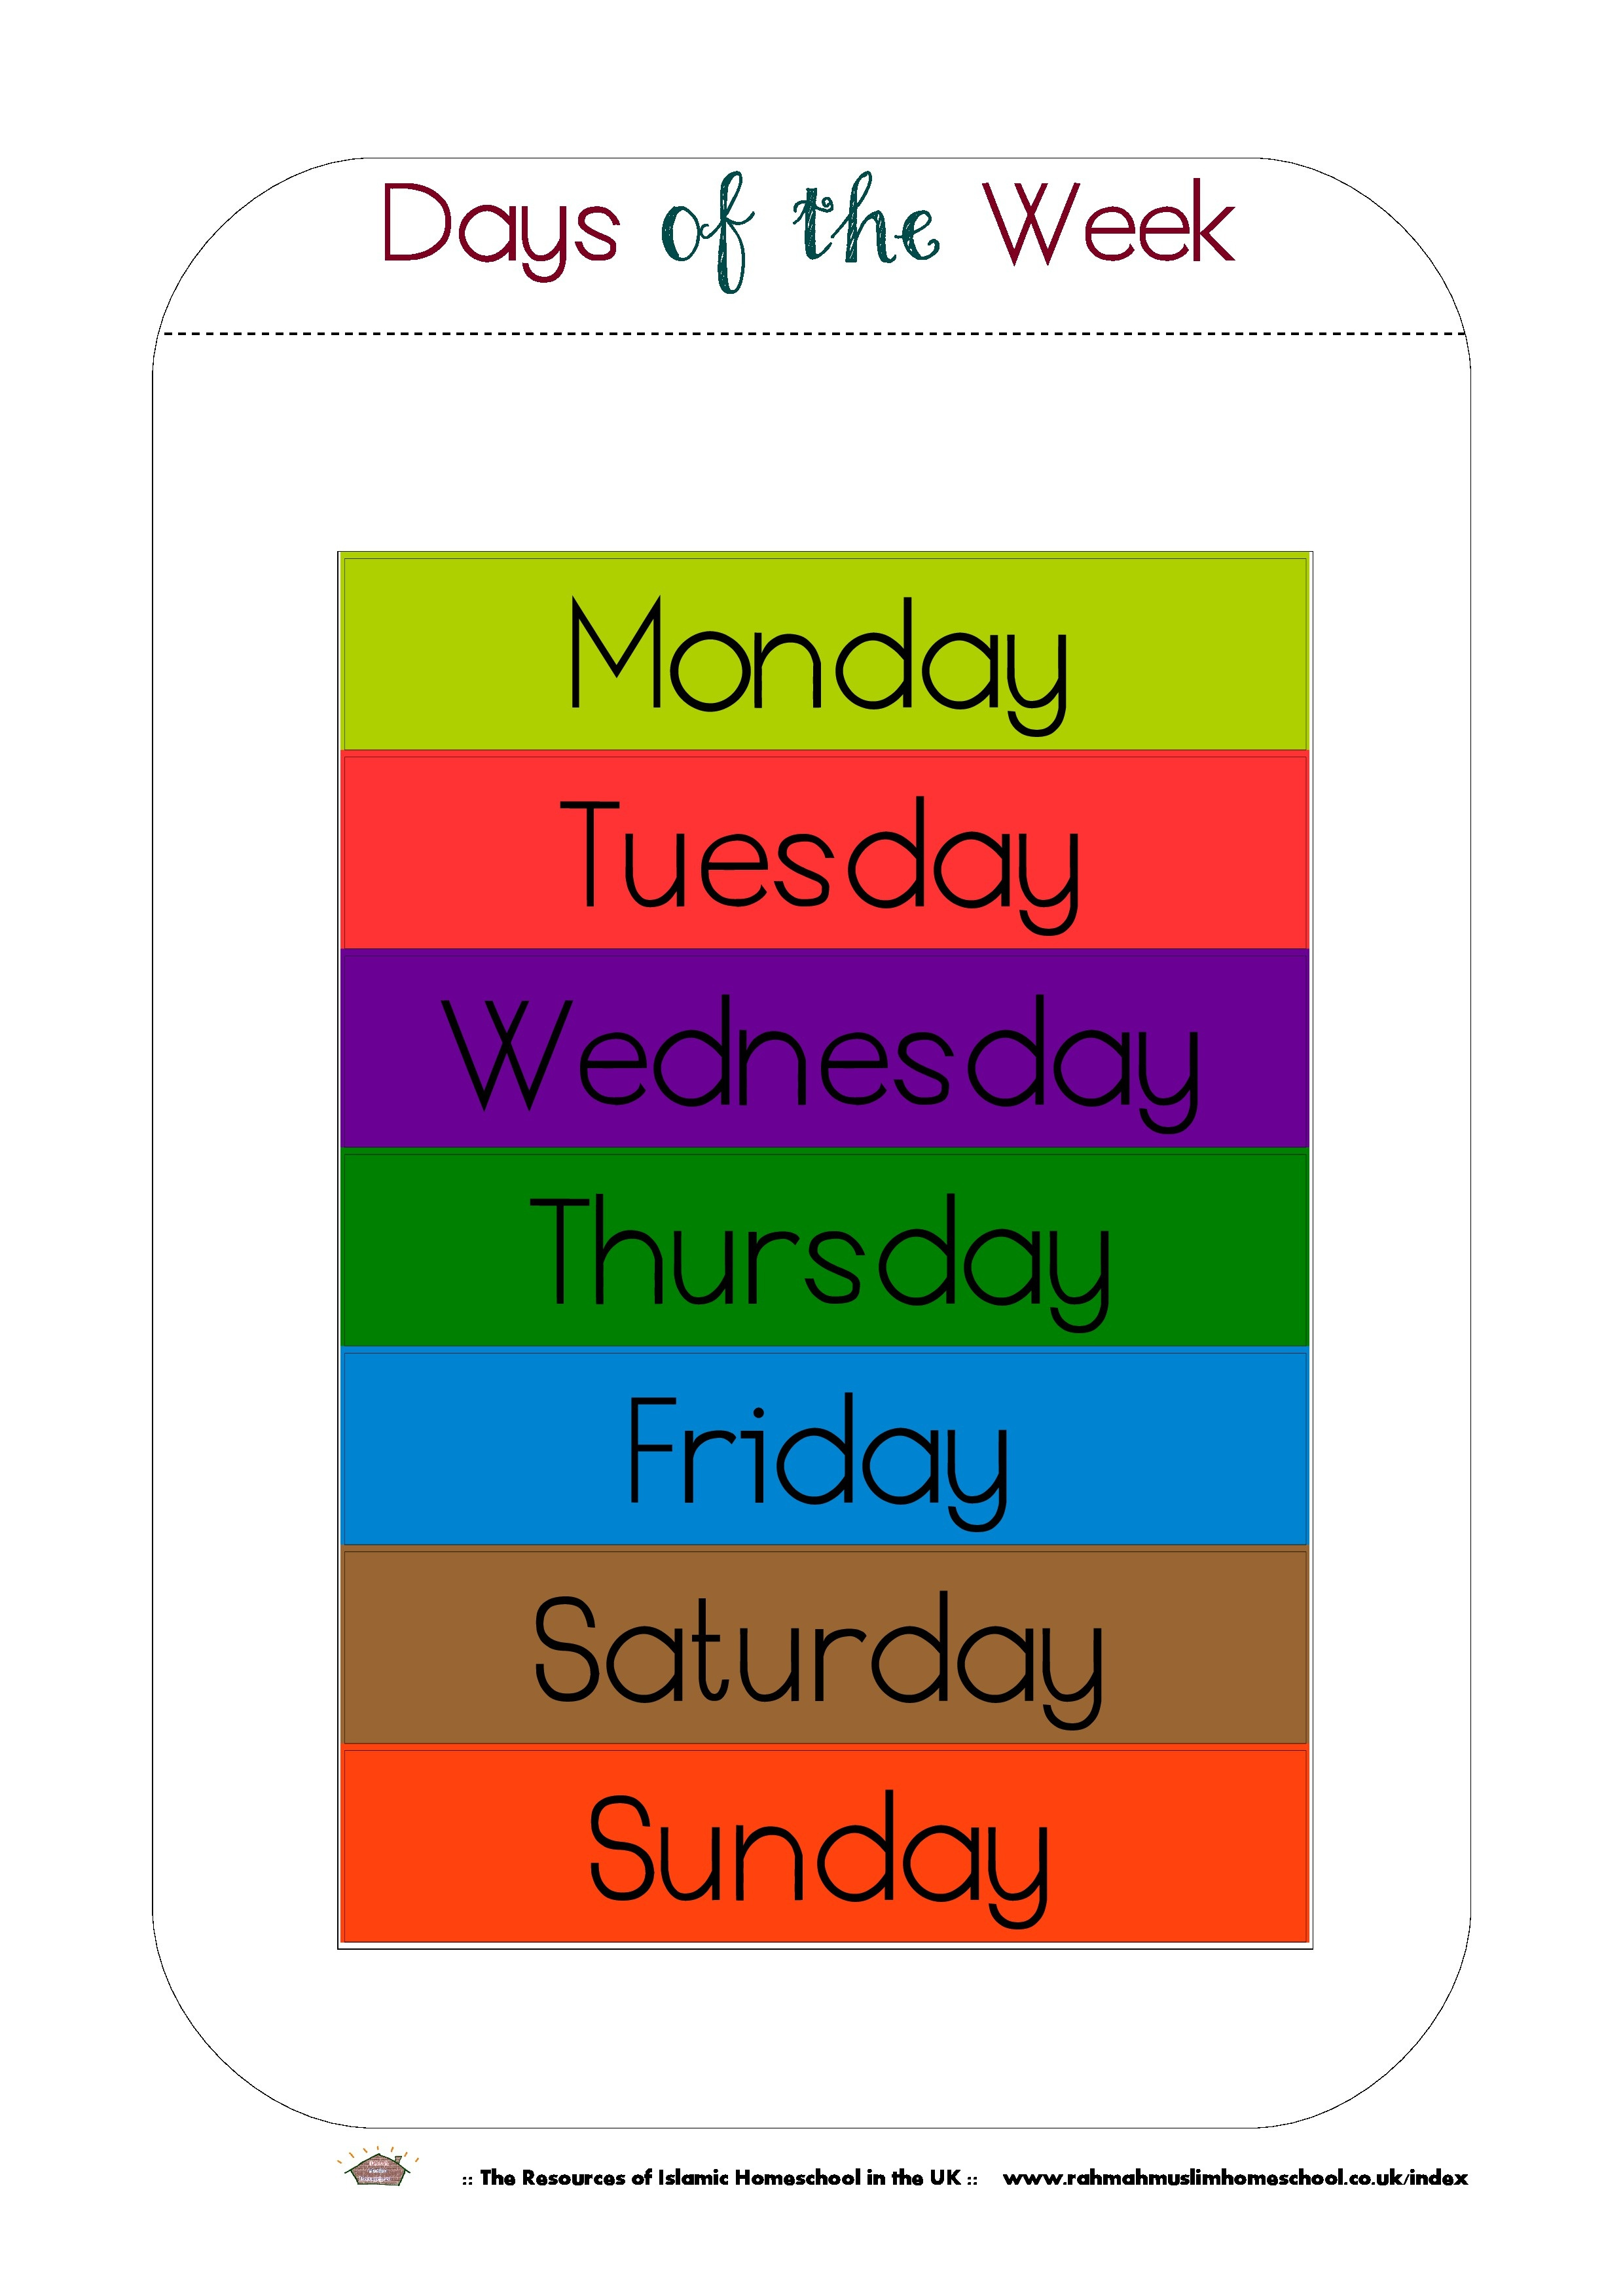 Free Printable Days Of The Week Workbook And Poster   The Resources - Free Printable Days Of The Week Cards